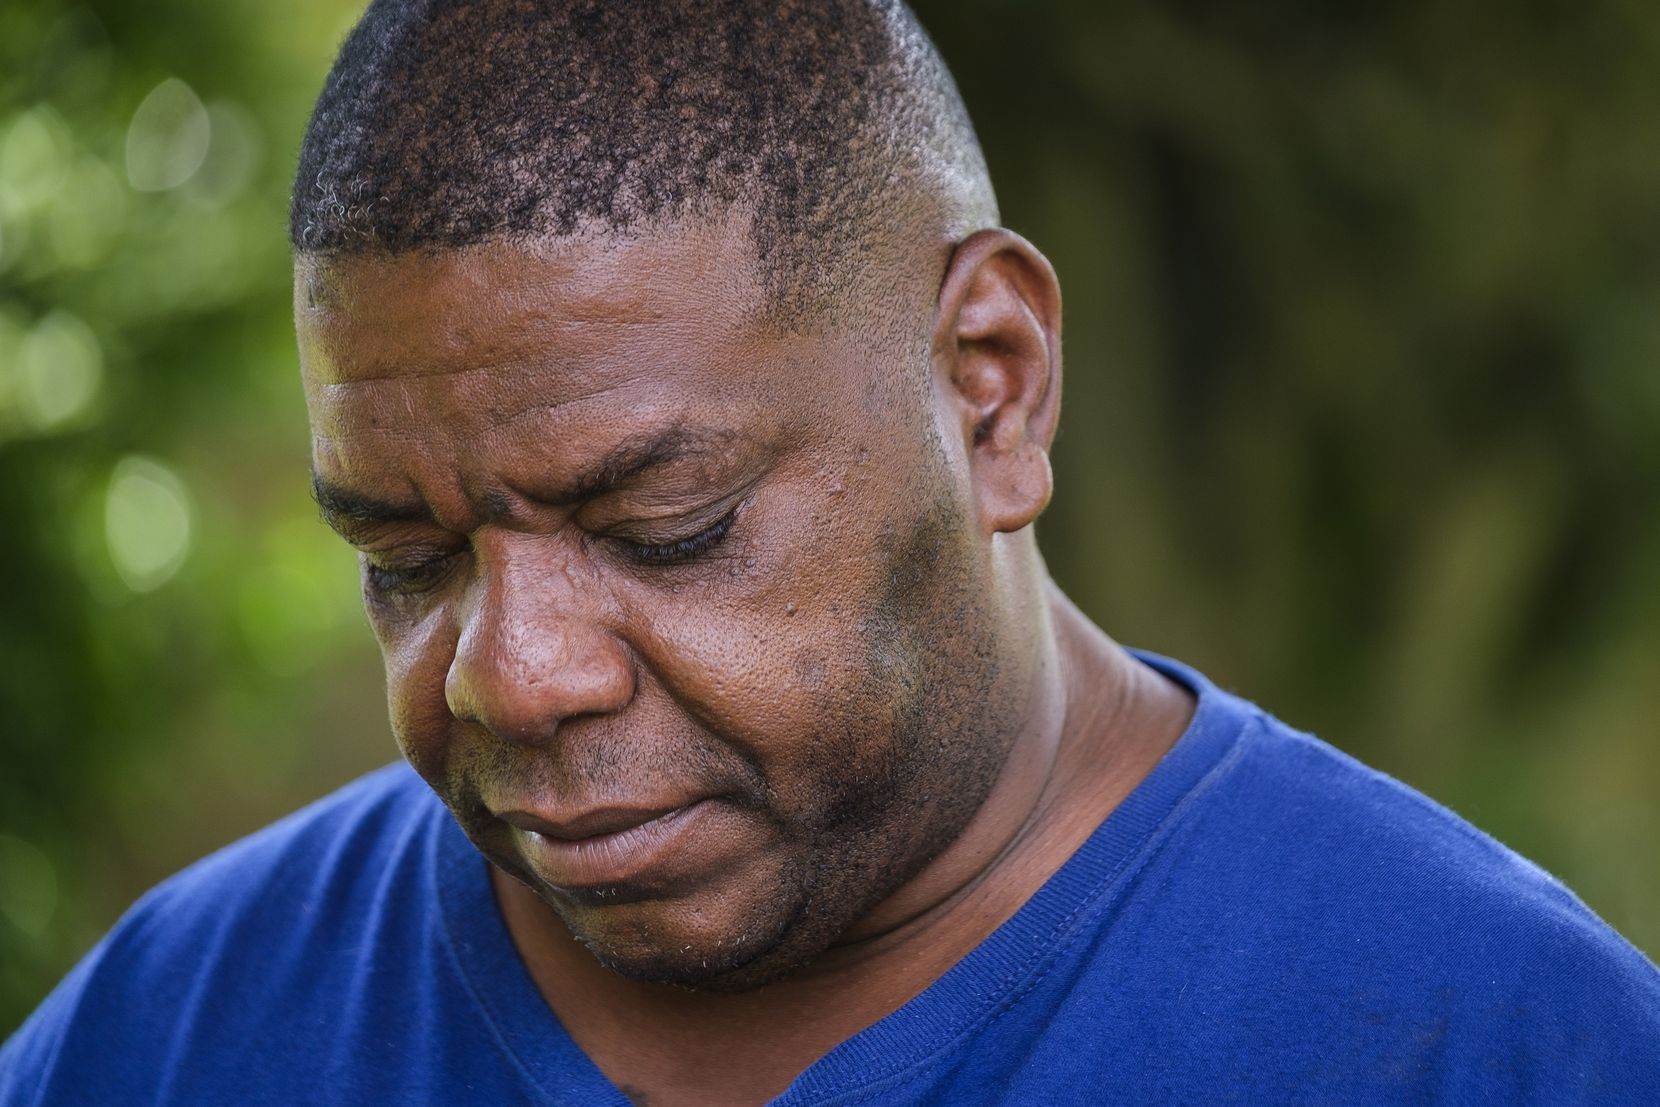 Peirre Booker, photographed during an interview in May. He is the father of Muhlaysia Booker, a transgender woman who was found shot to death May 18, 2019, about a month after she was the victim of a mob attack.